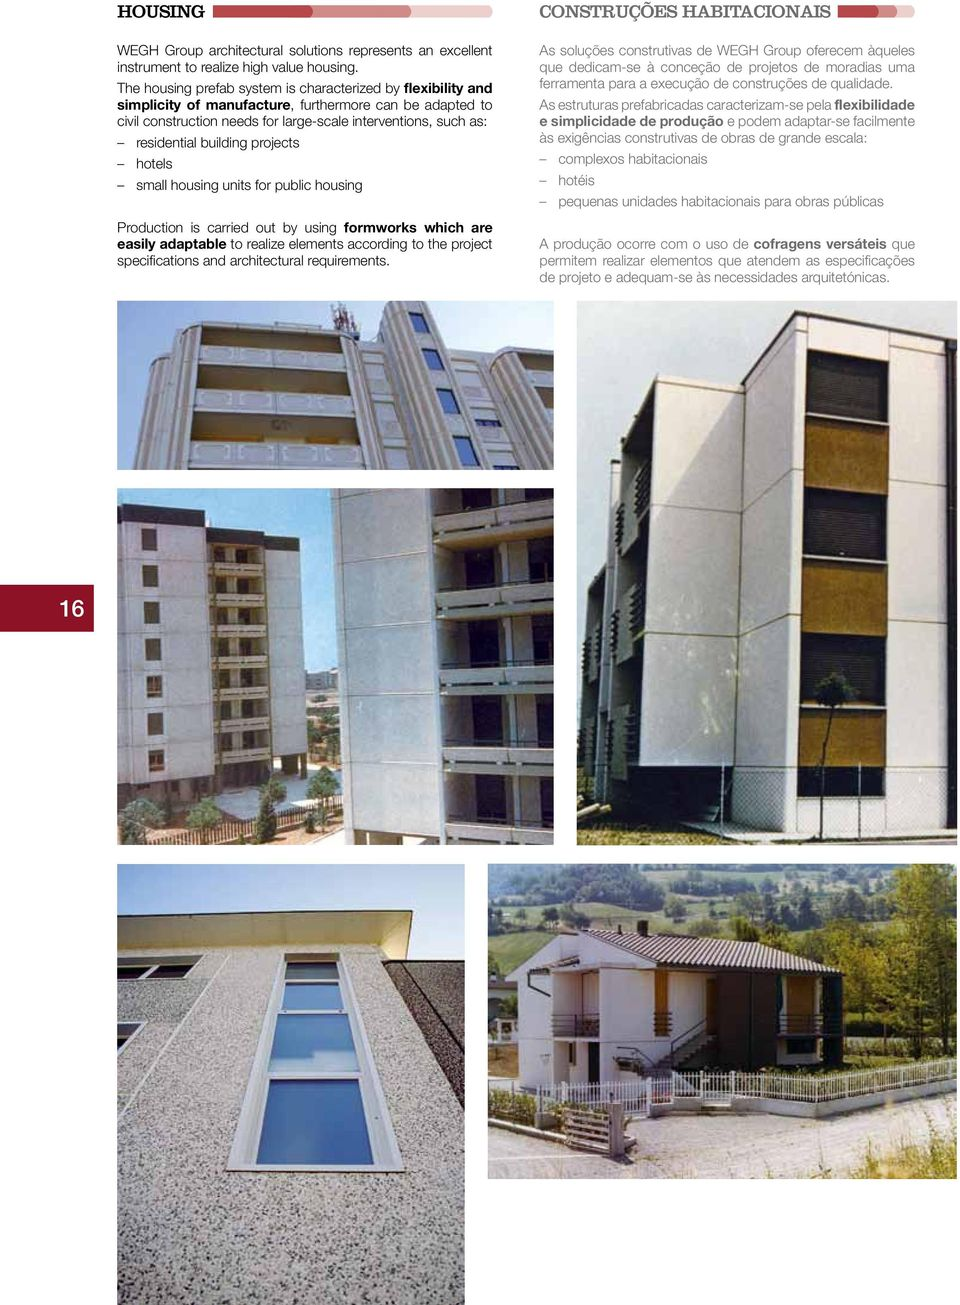 building projects hotels small housing units for public housing Production is carried out by using formworks which are easily adaptable to realize elements according to the project specifications and